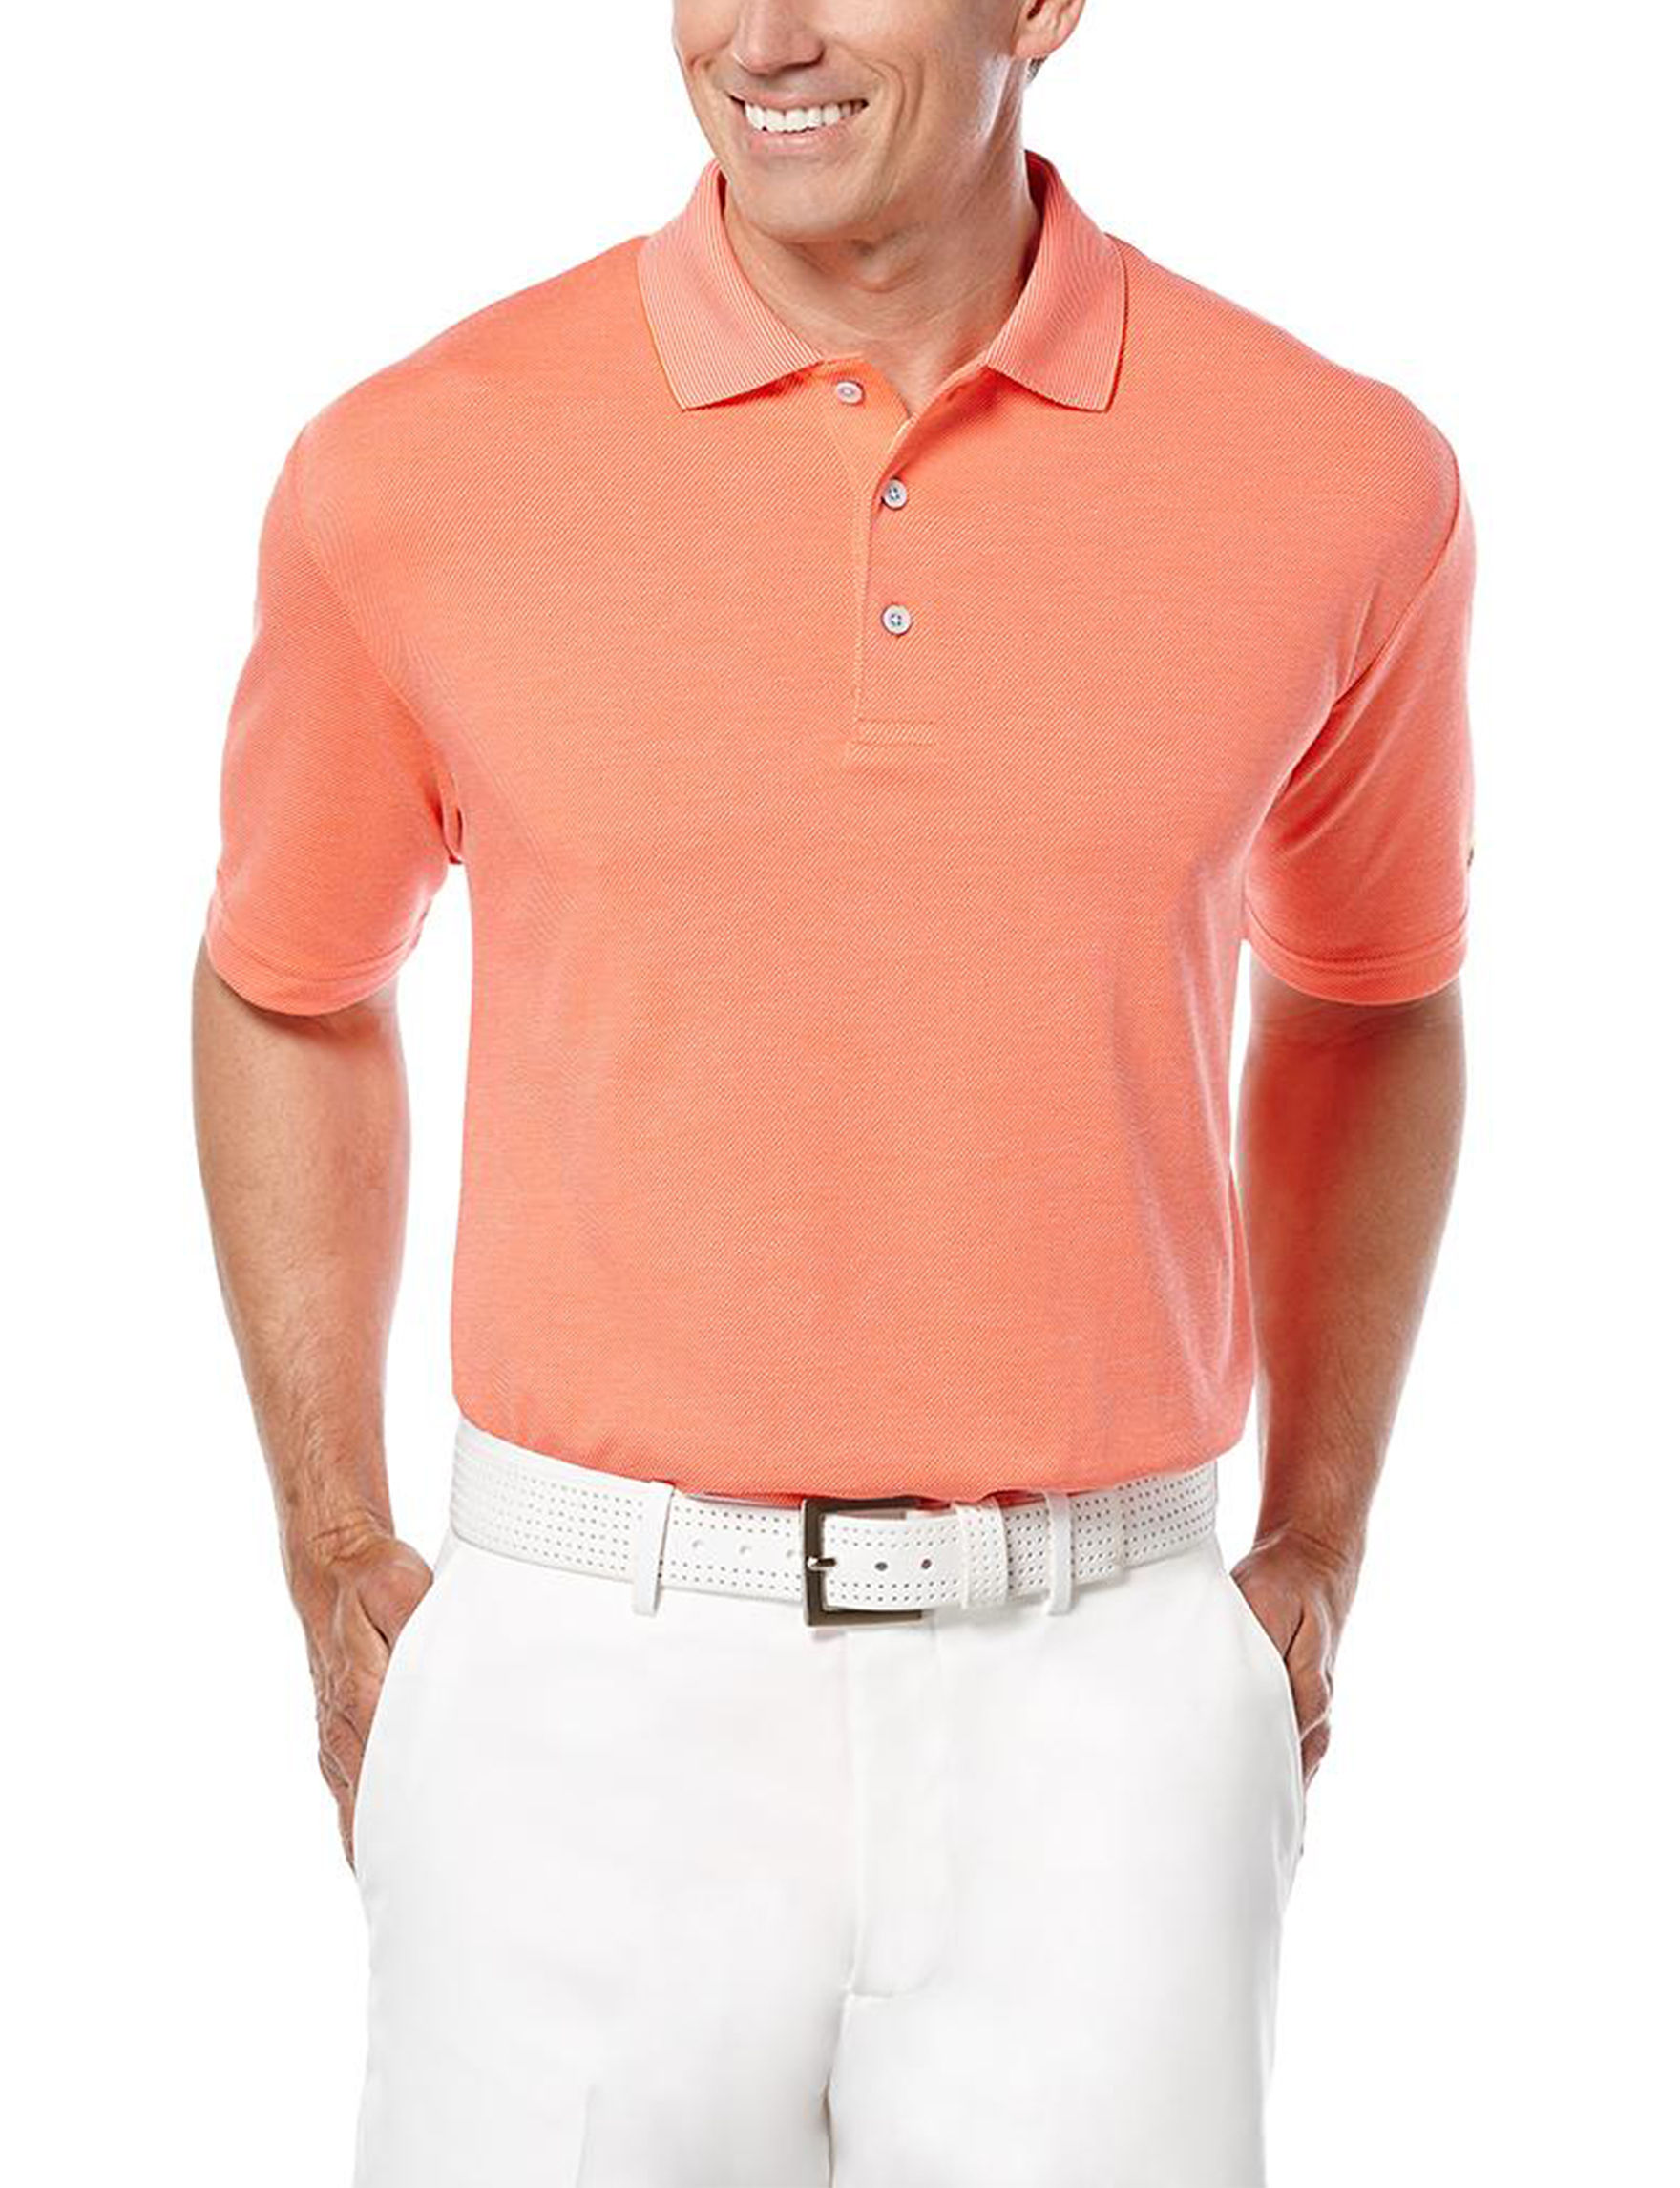 Jack Nicklaus Coral Polos